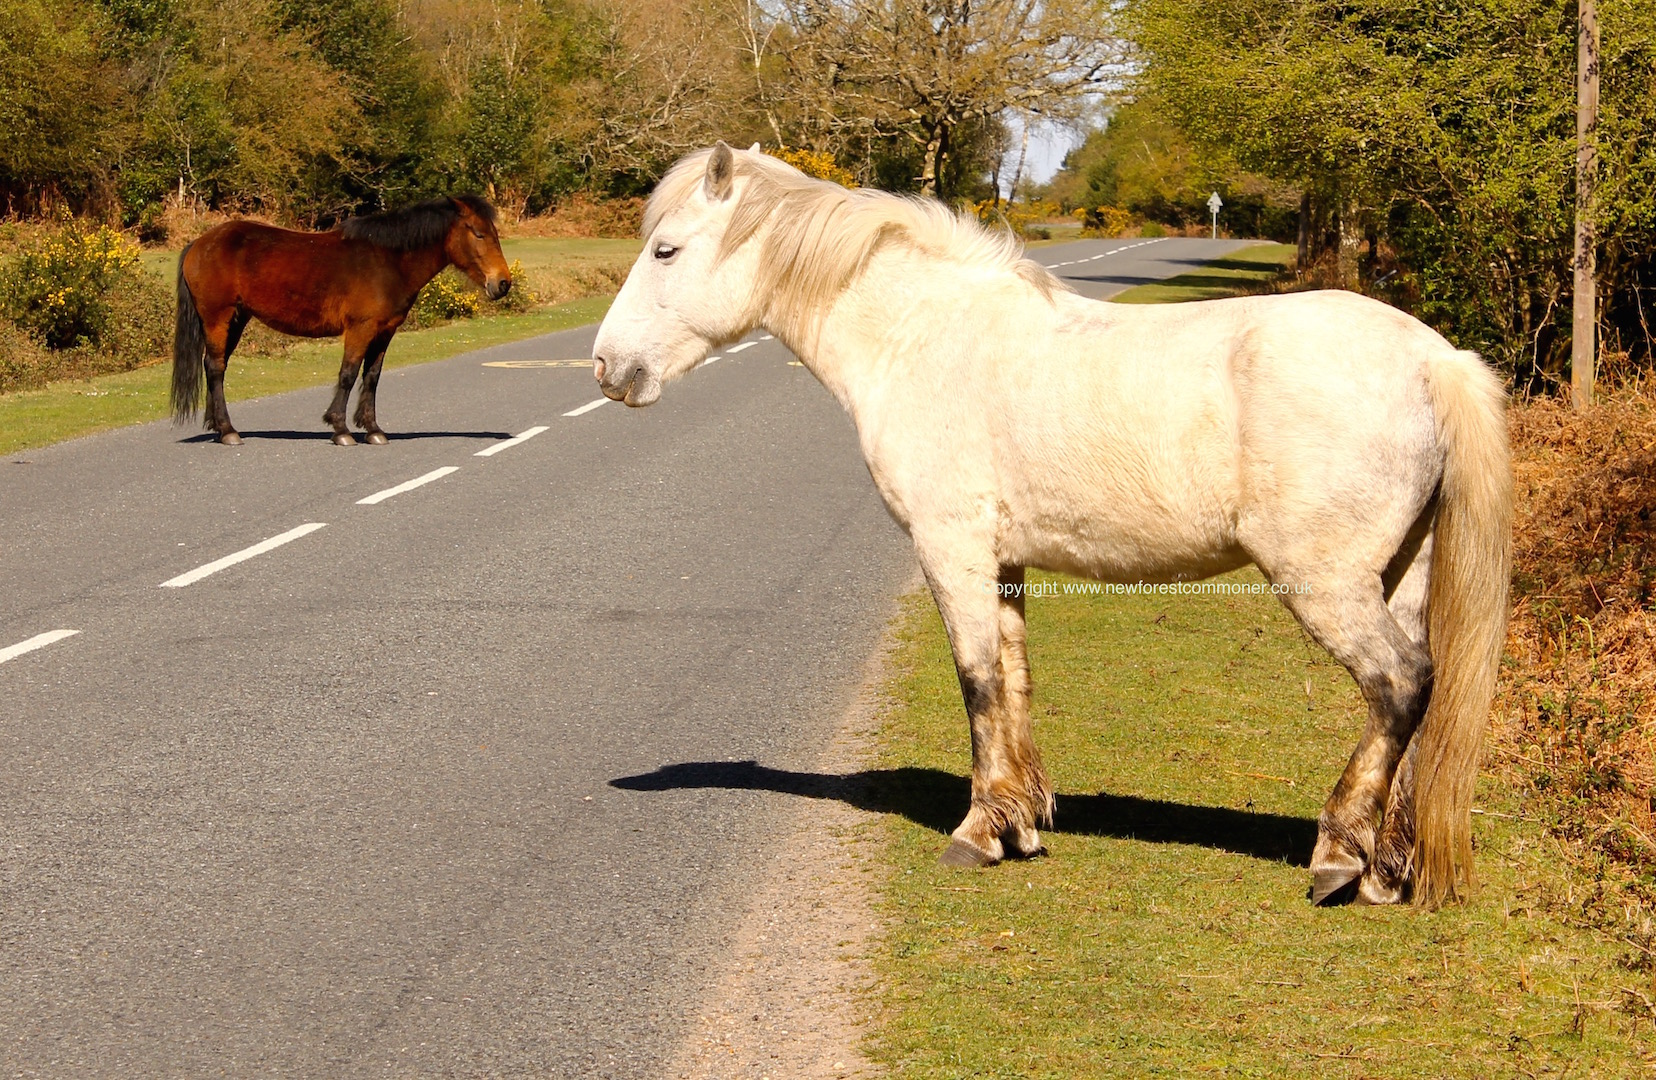 The 'wild' ponies use the New Forest road system at all times of the year, day and night.